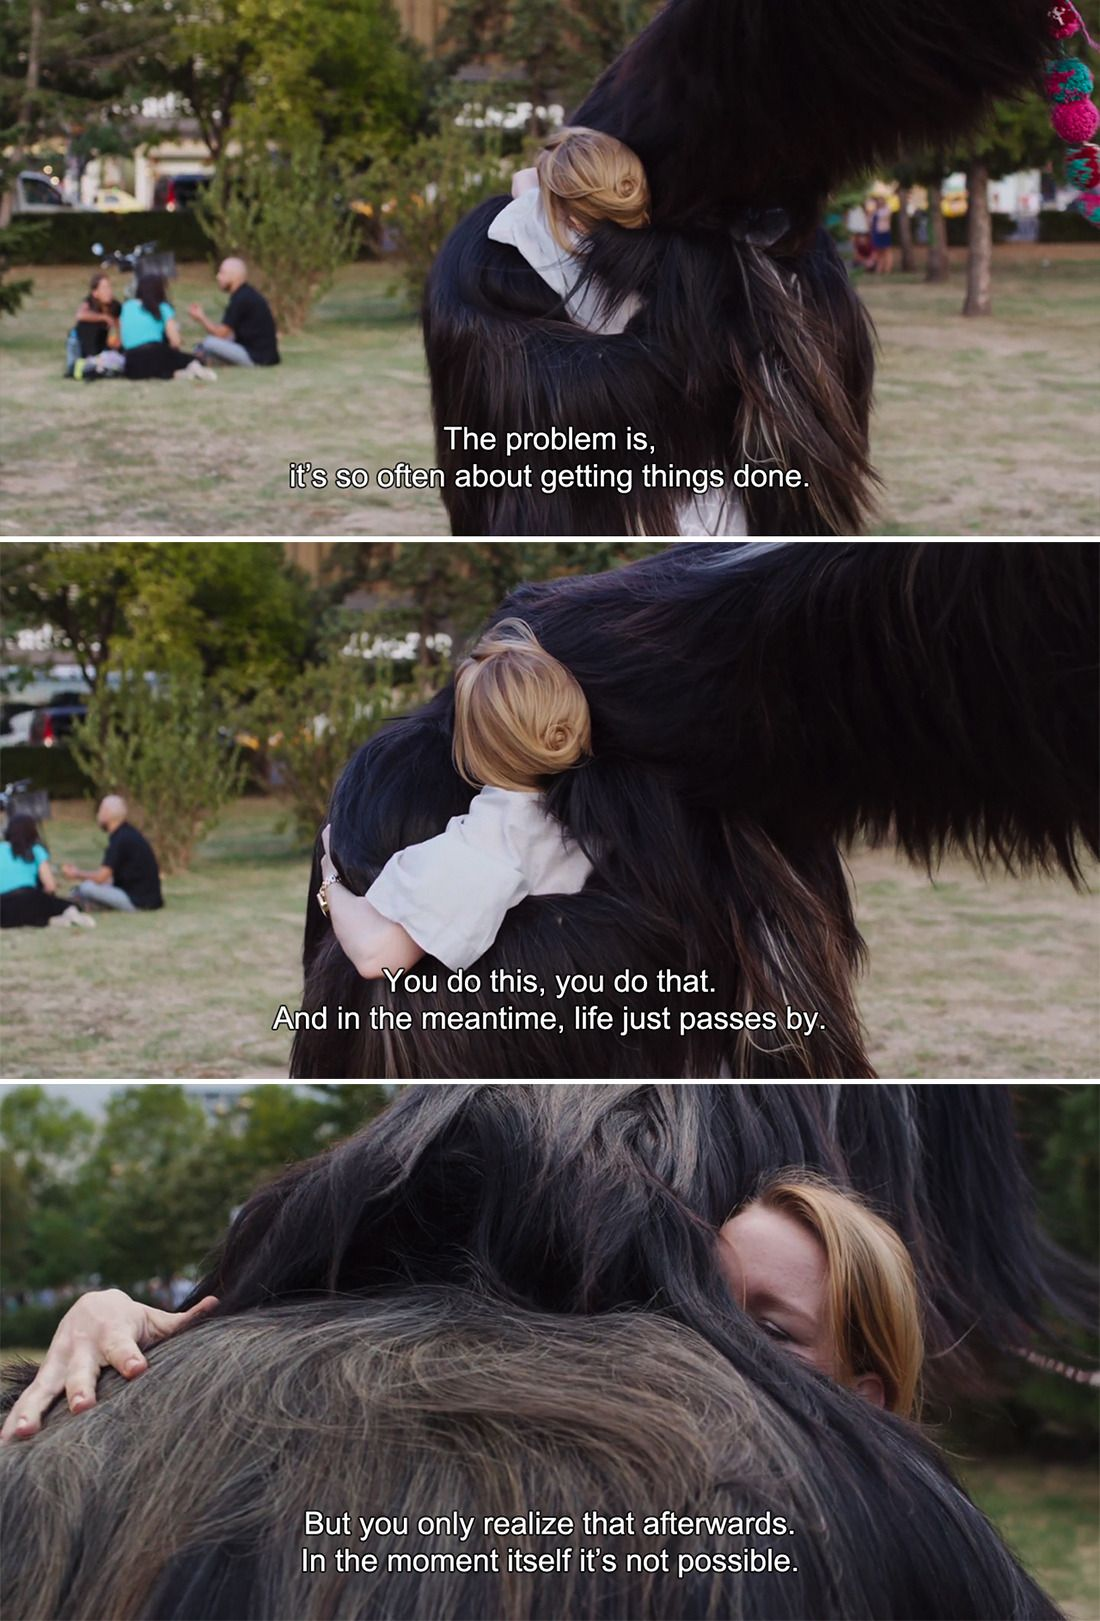 Toni Erdmann 2016 Winfried The Problem I It S So Often About Getting Thing Done You Do Thi Th In Moment Movie Quotes How To Cite A Quote From Harvard Style